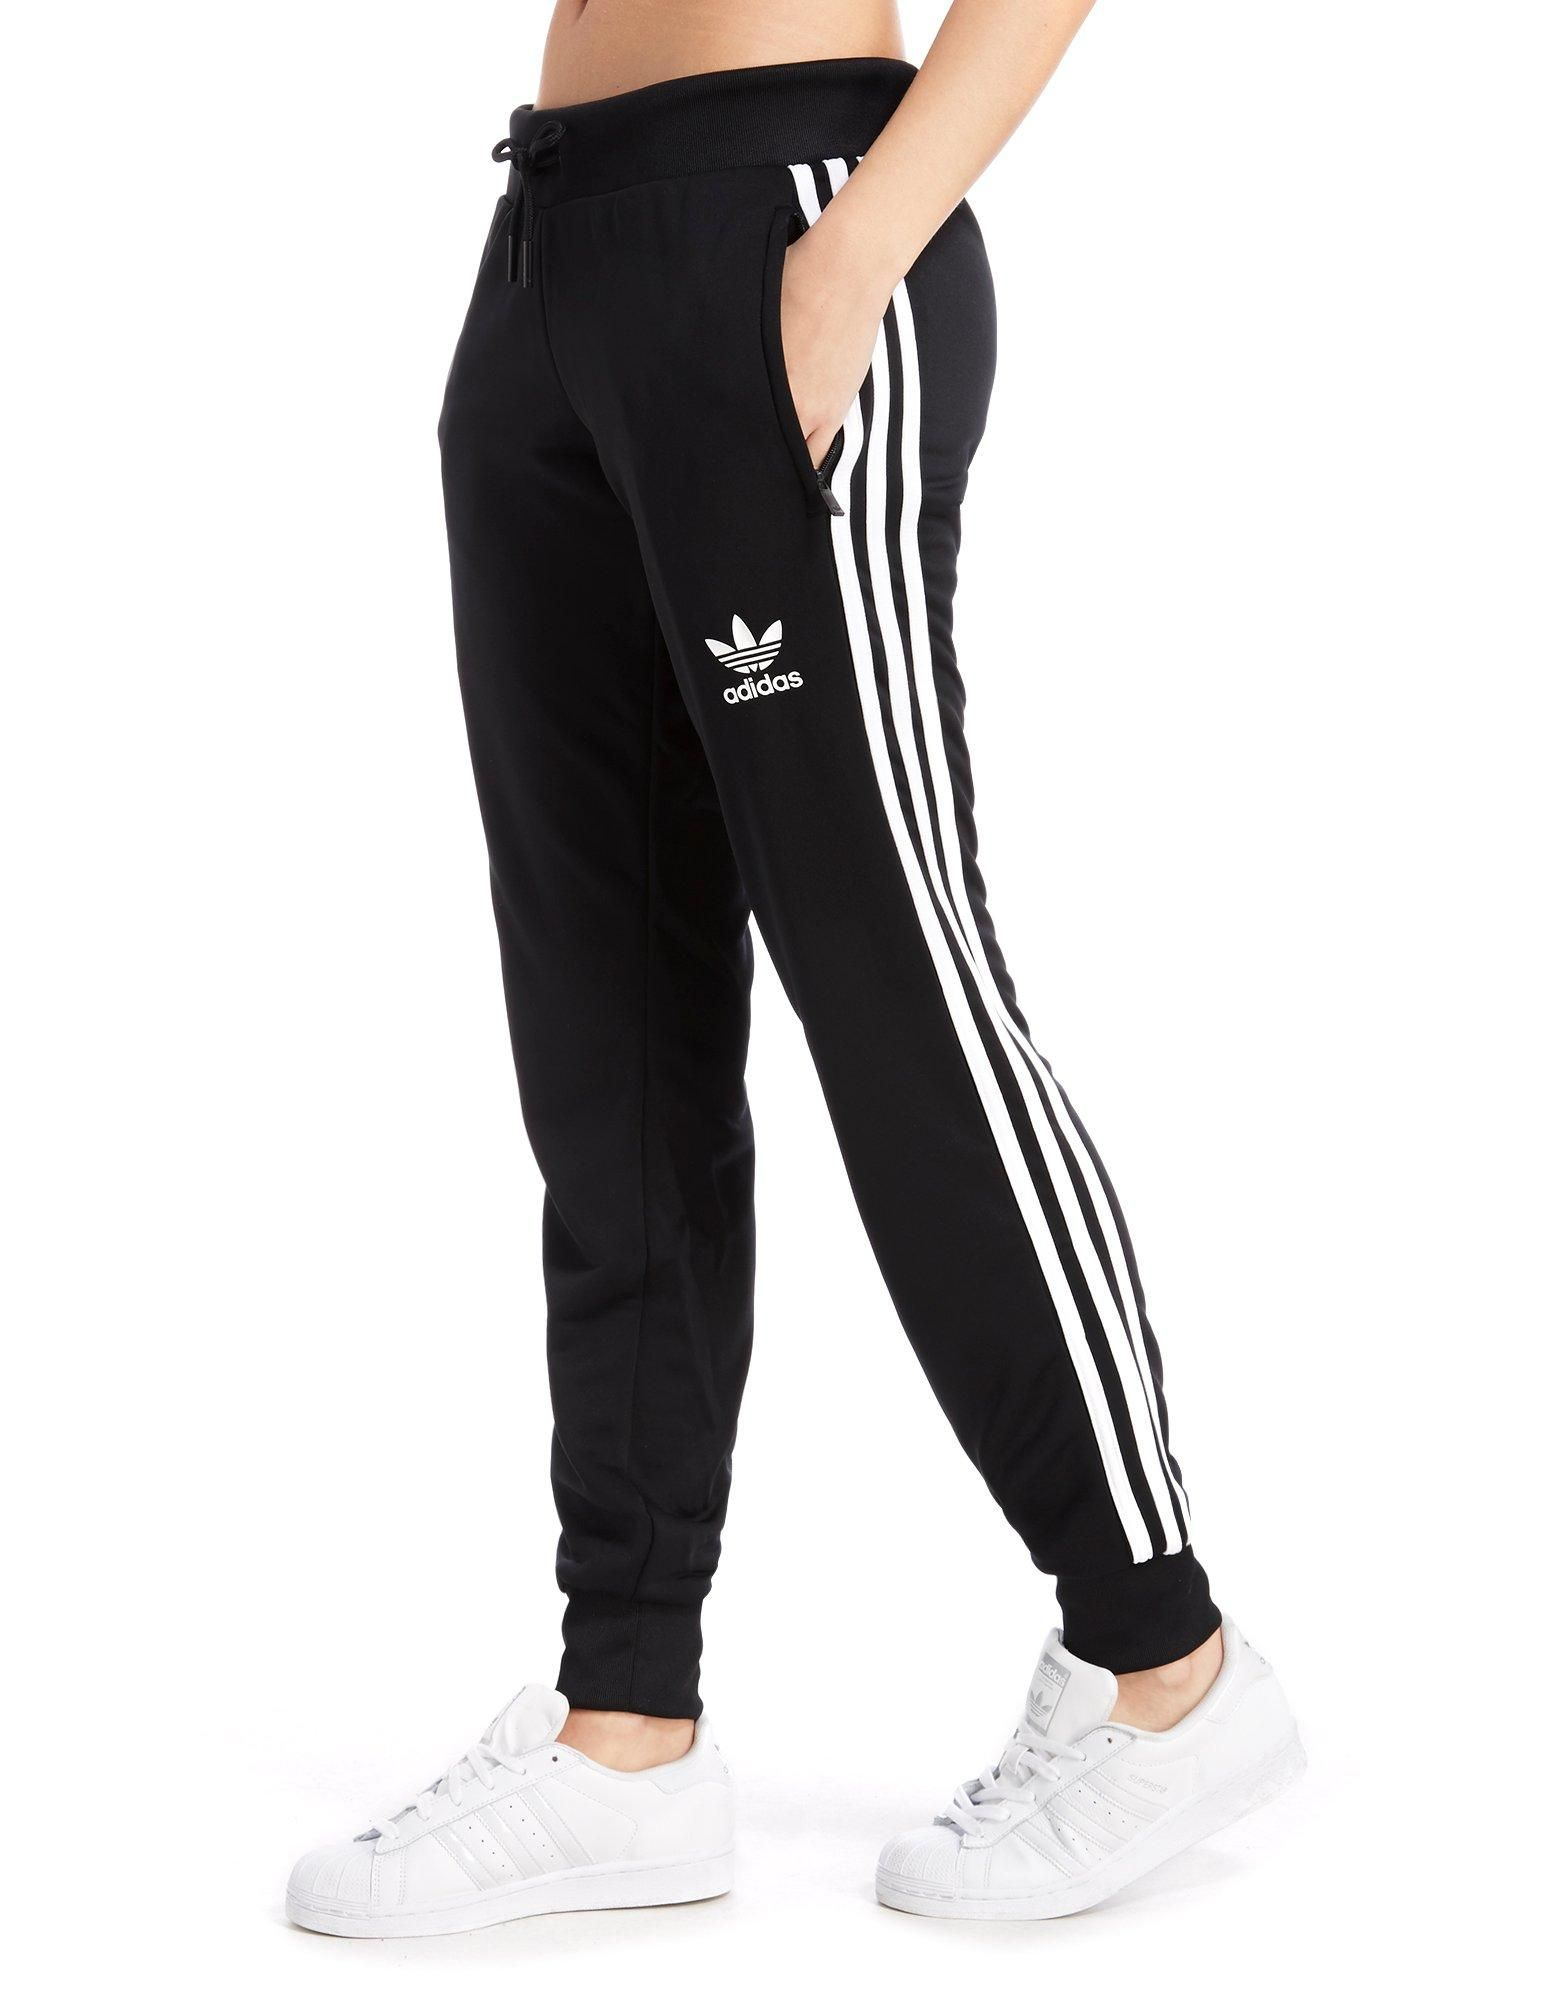 Pin By Isaiah On Christmas Board 2k16 Adidas Outfit Women Adidas Joggers Tracksuit Women [ 2000 x 1567 Pixel ]